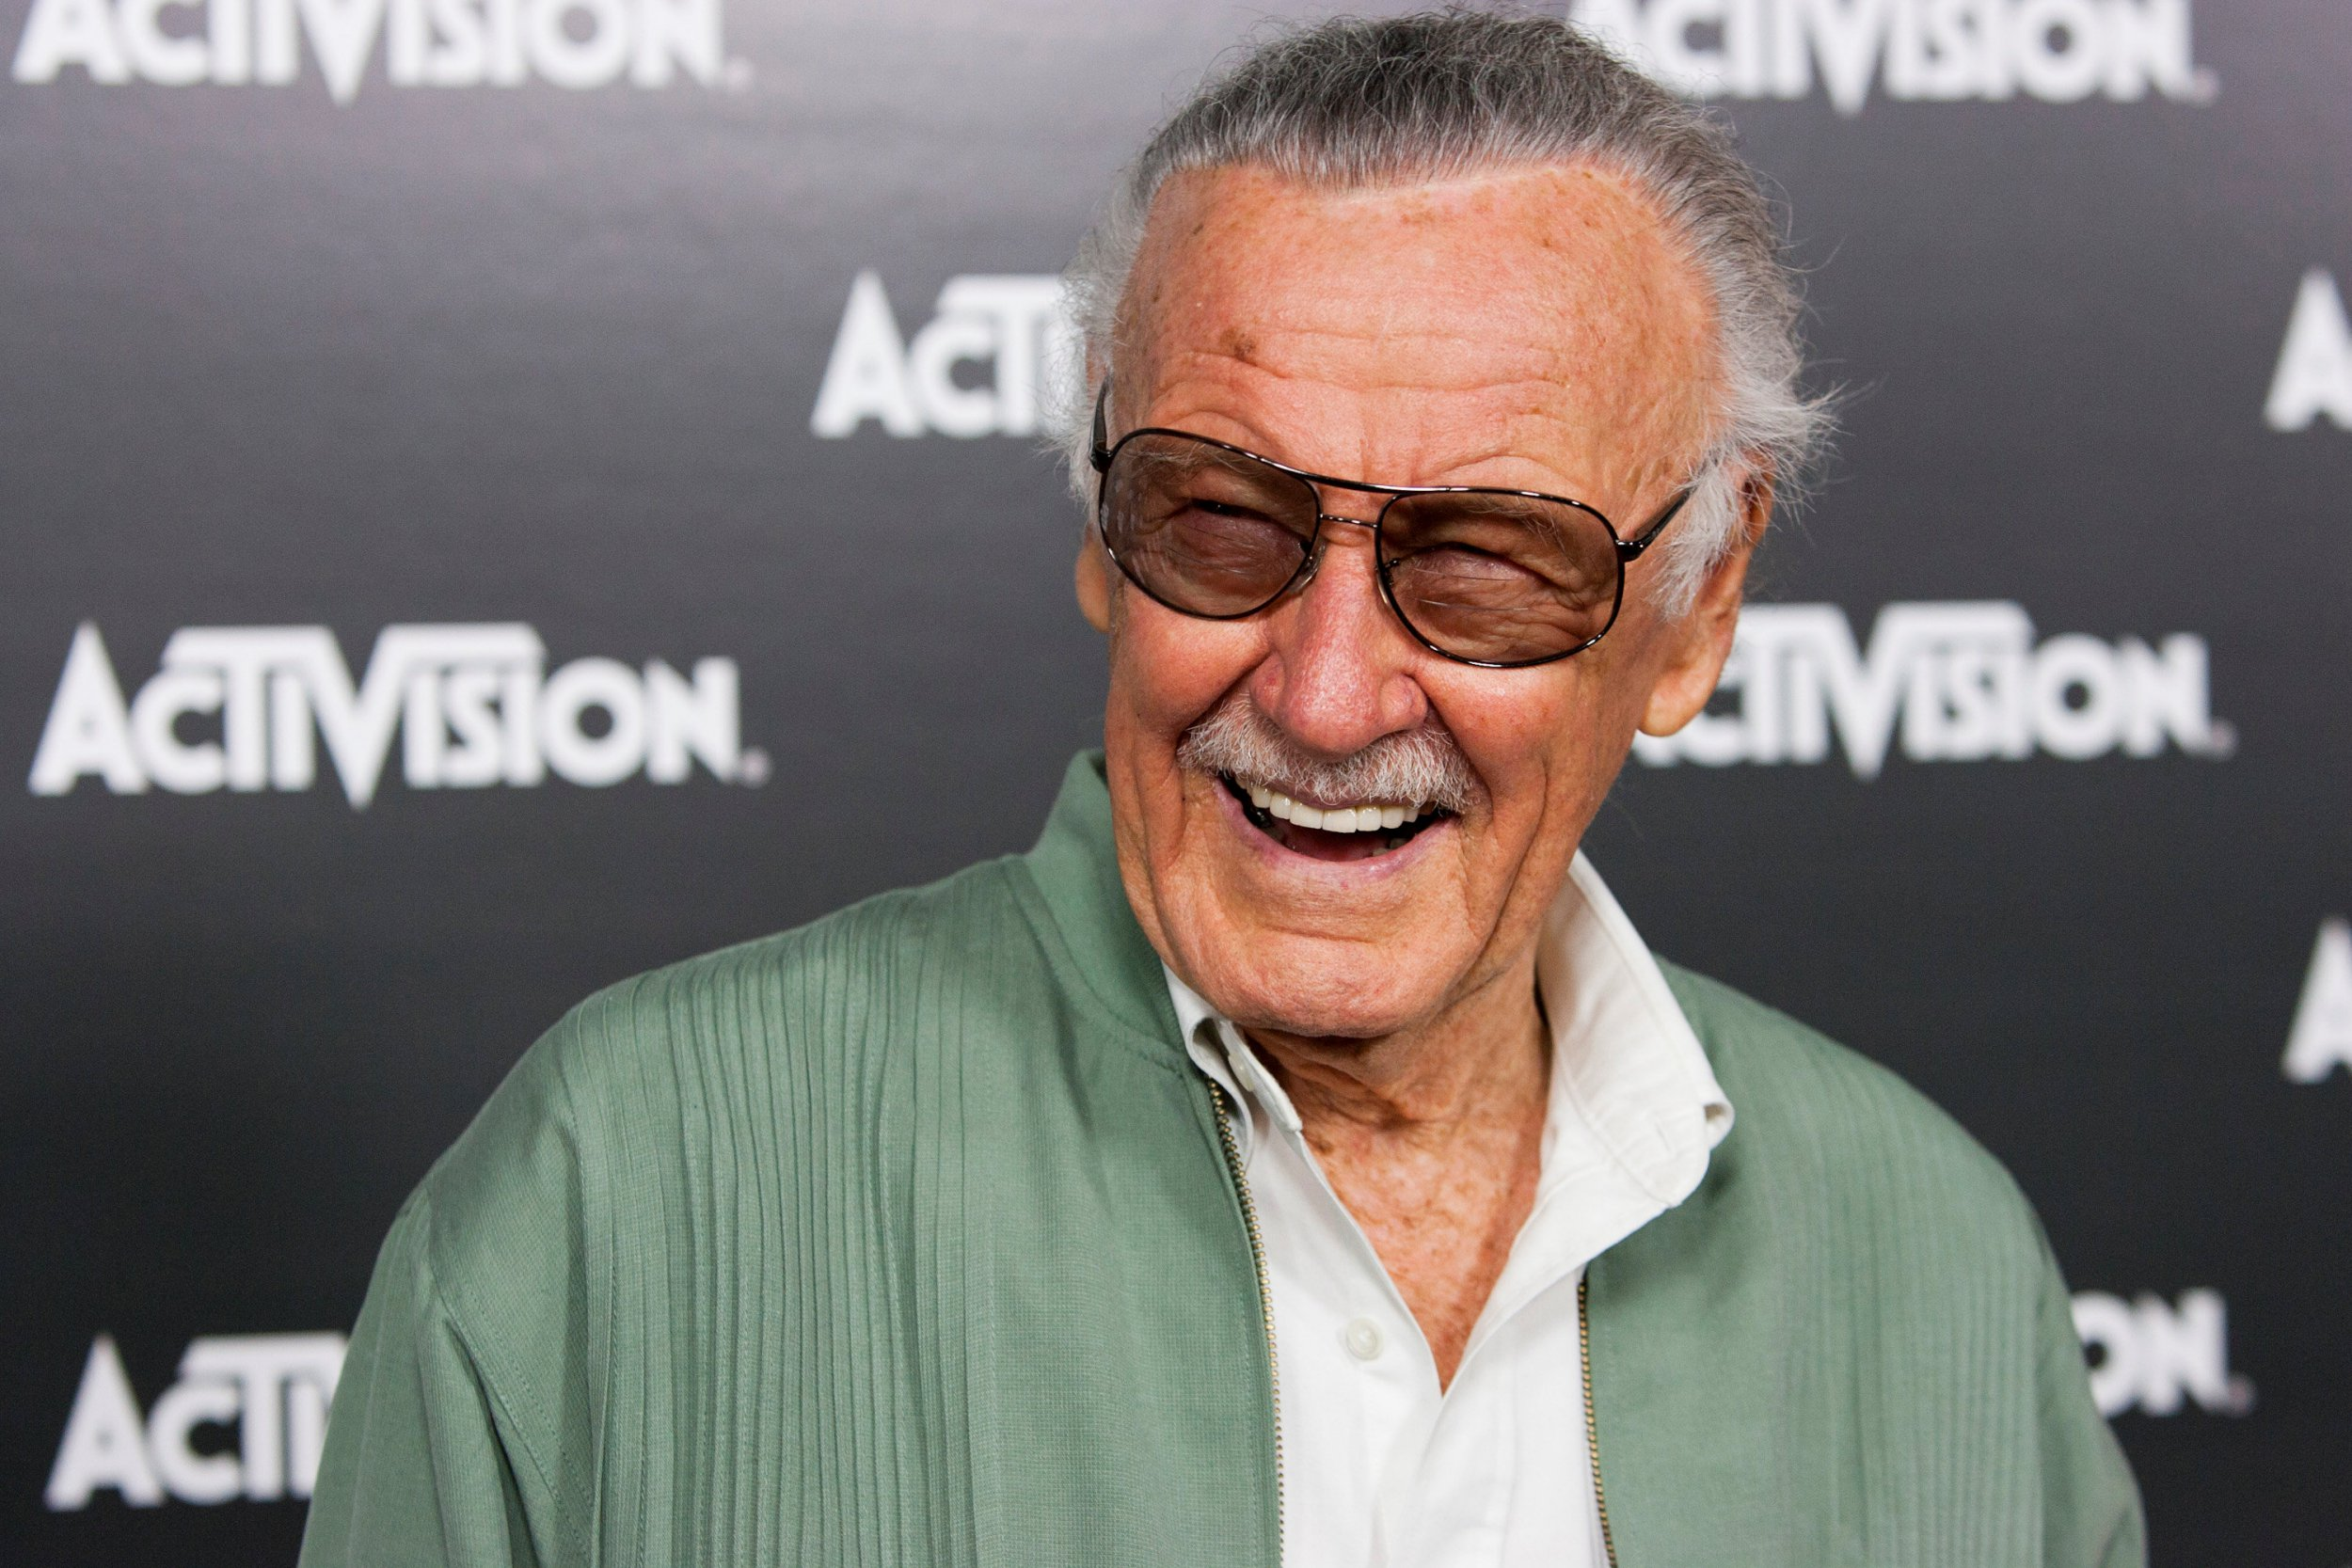 Stan Lee laid to rest in private funeral as public tribute confirmed to be in the works